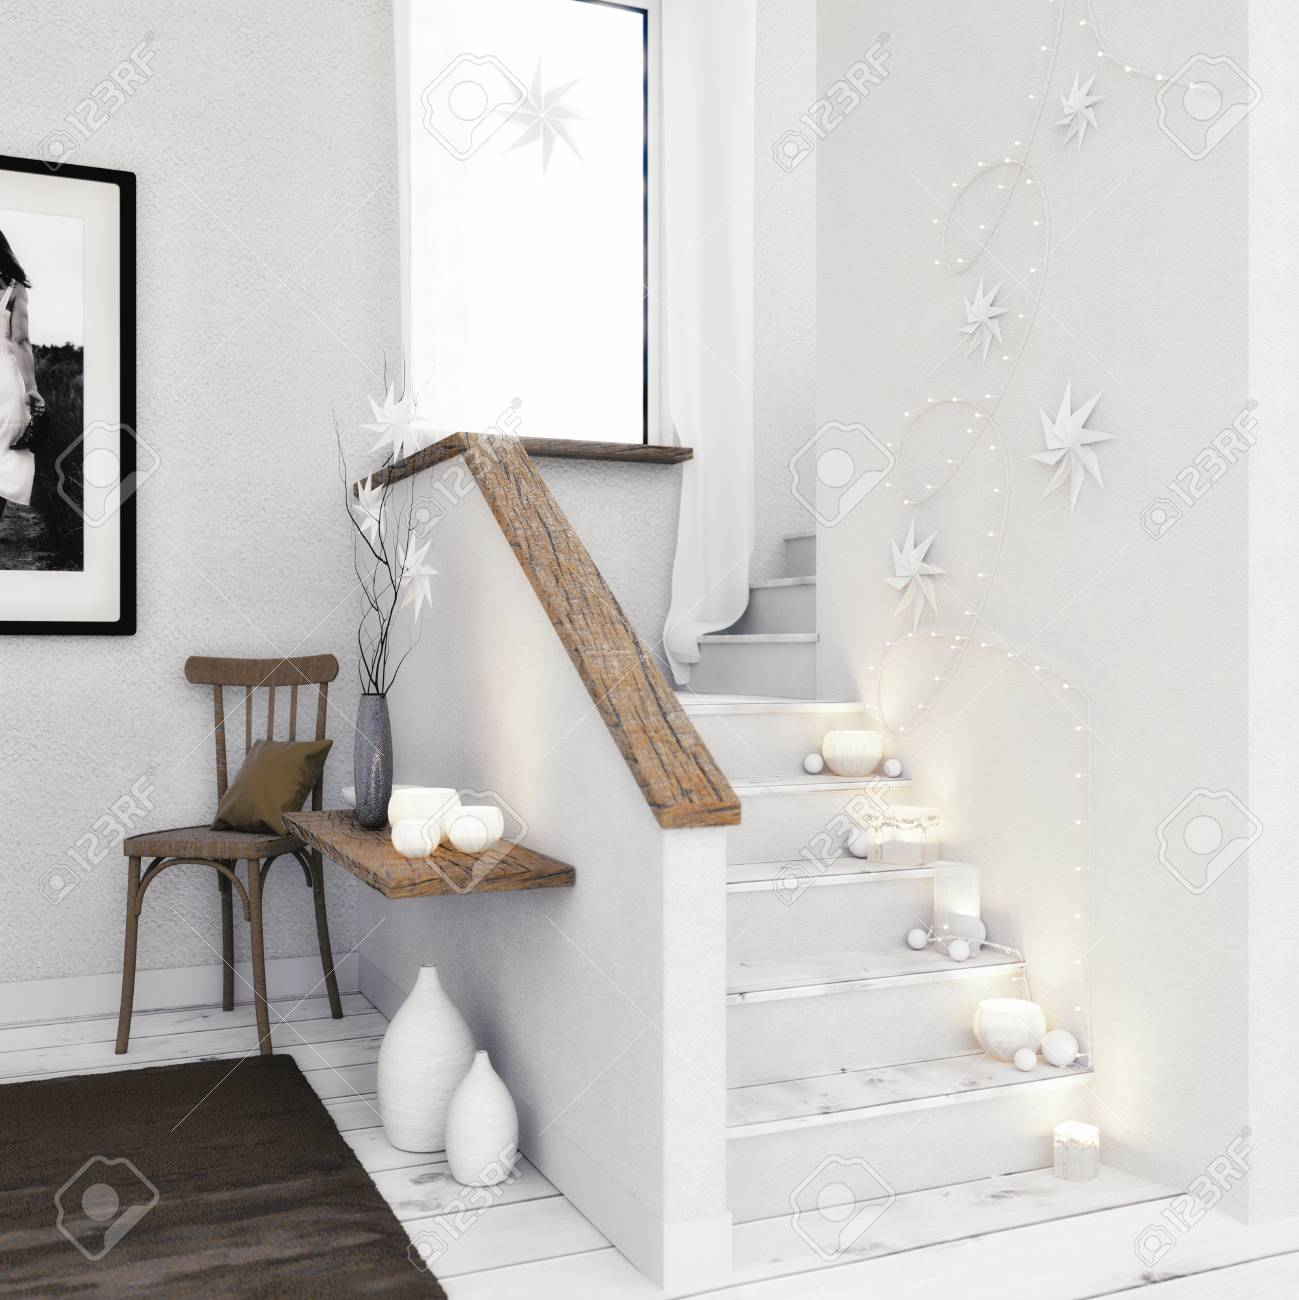 3D render - Stairway with Christmas decoration - 113193477